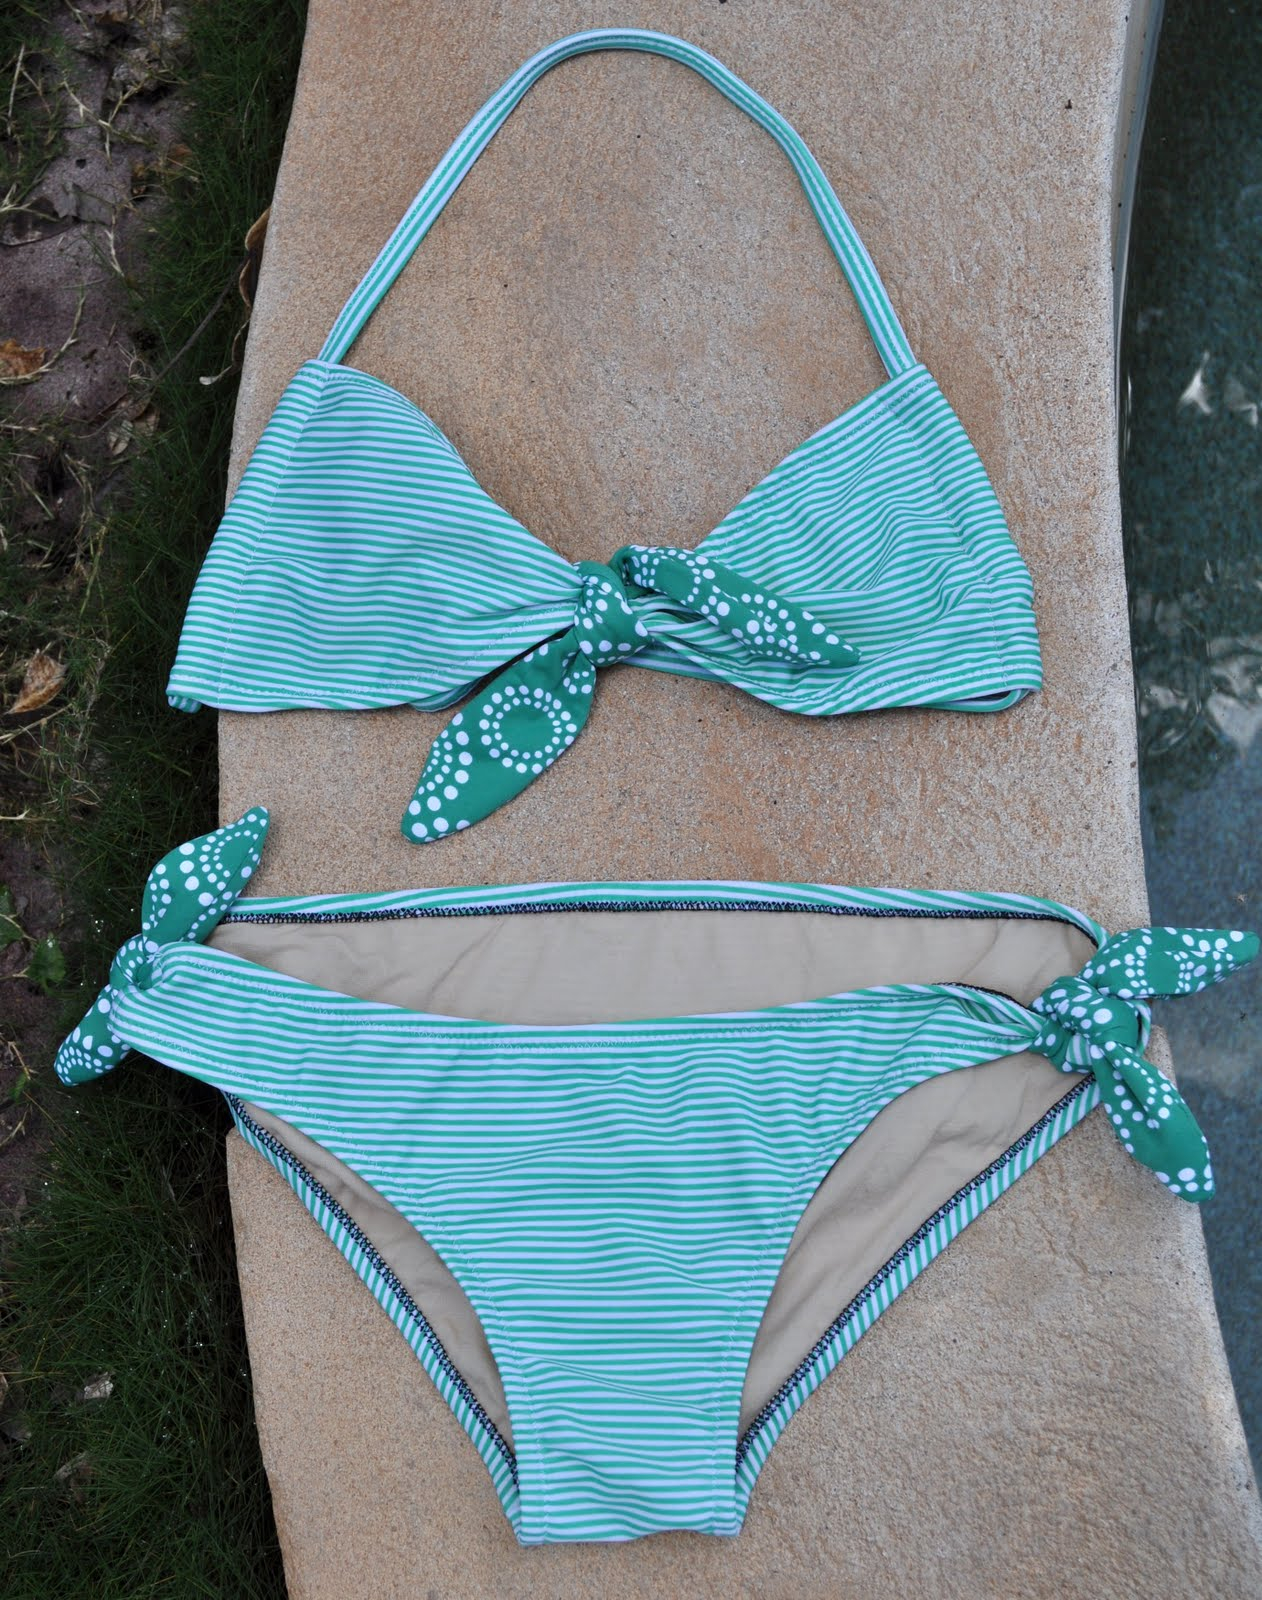 Minty striped bikini